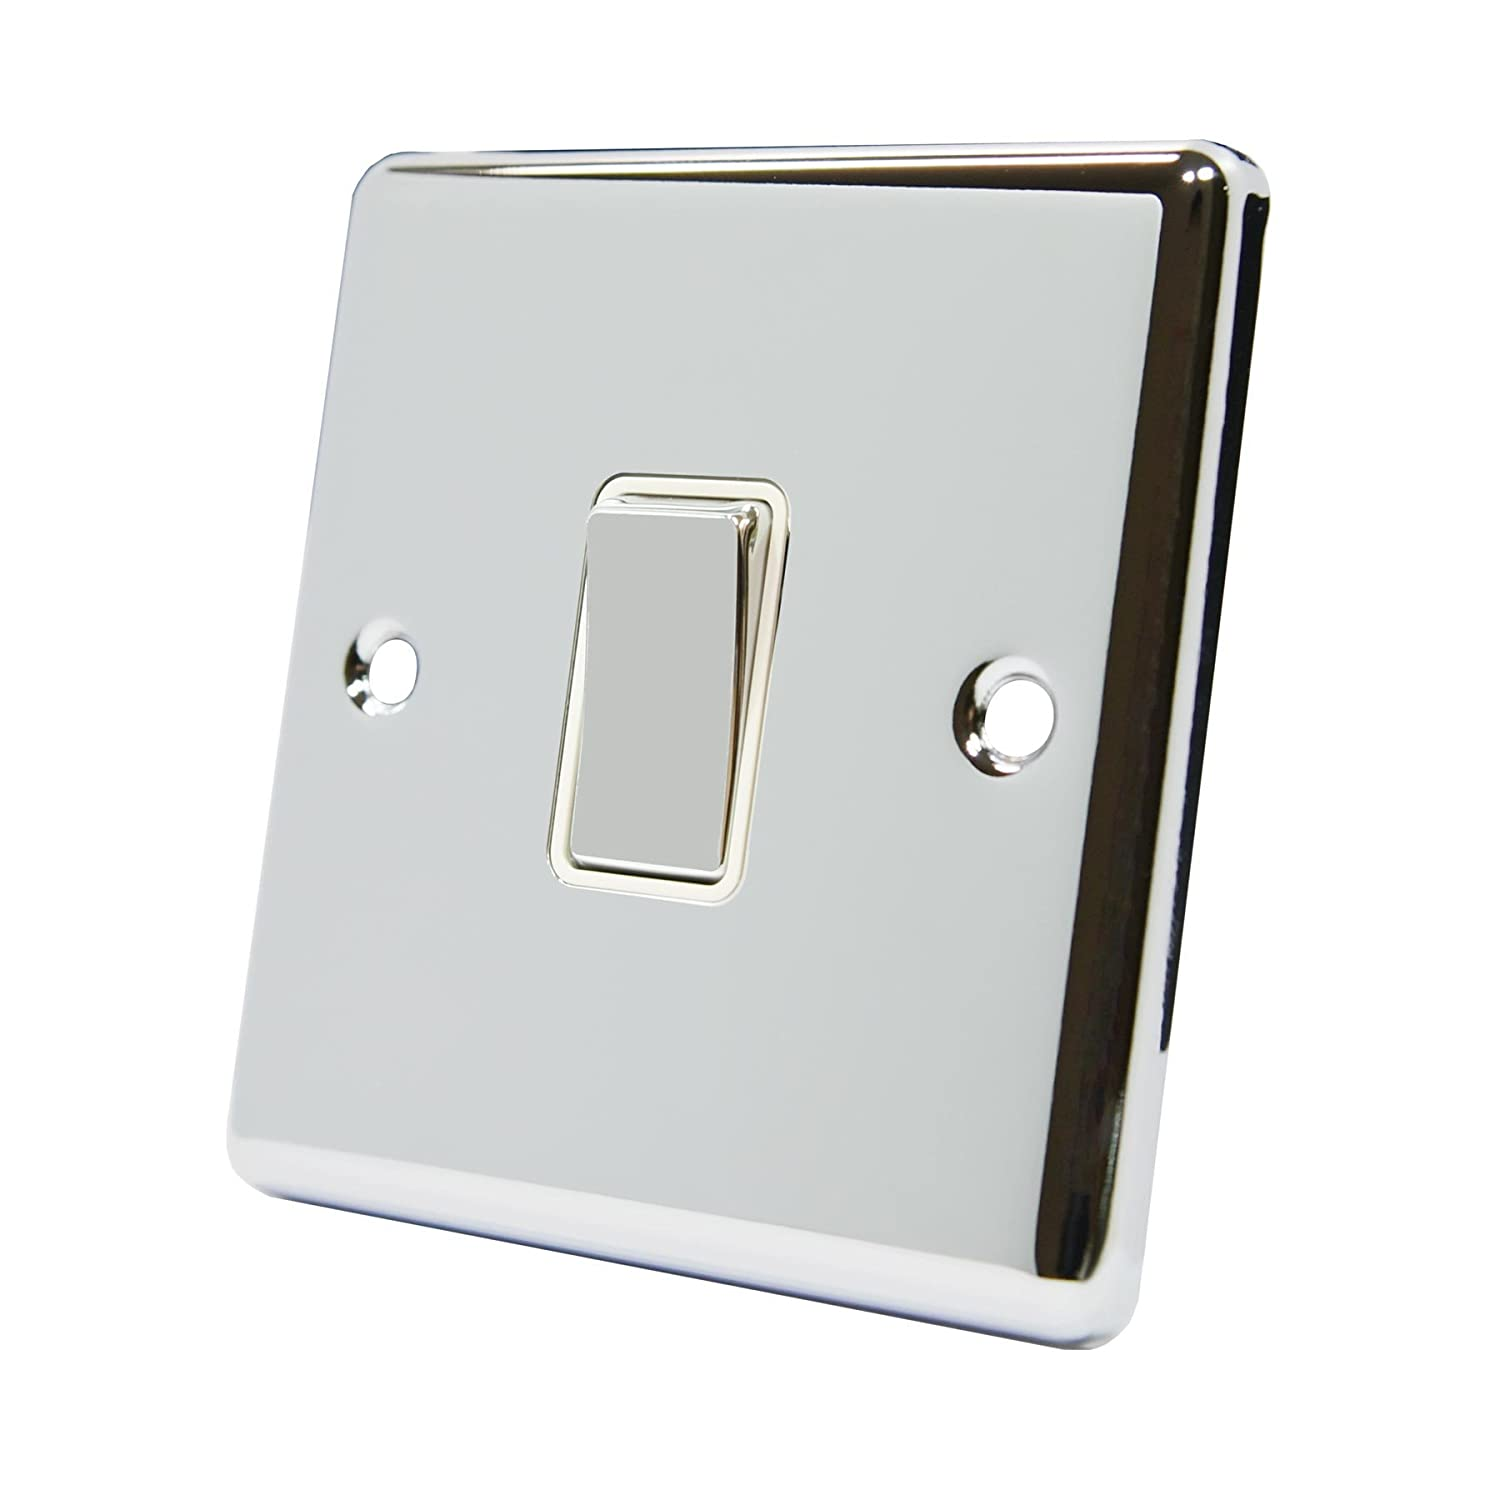 Light Switch Plates Light Switch Plates Light Switch